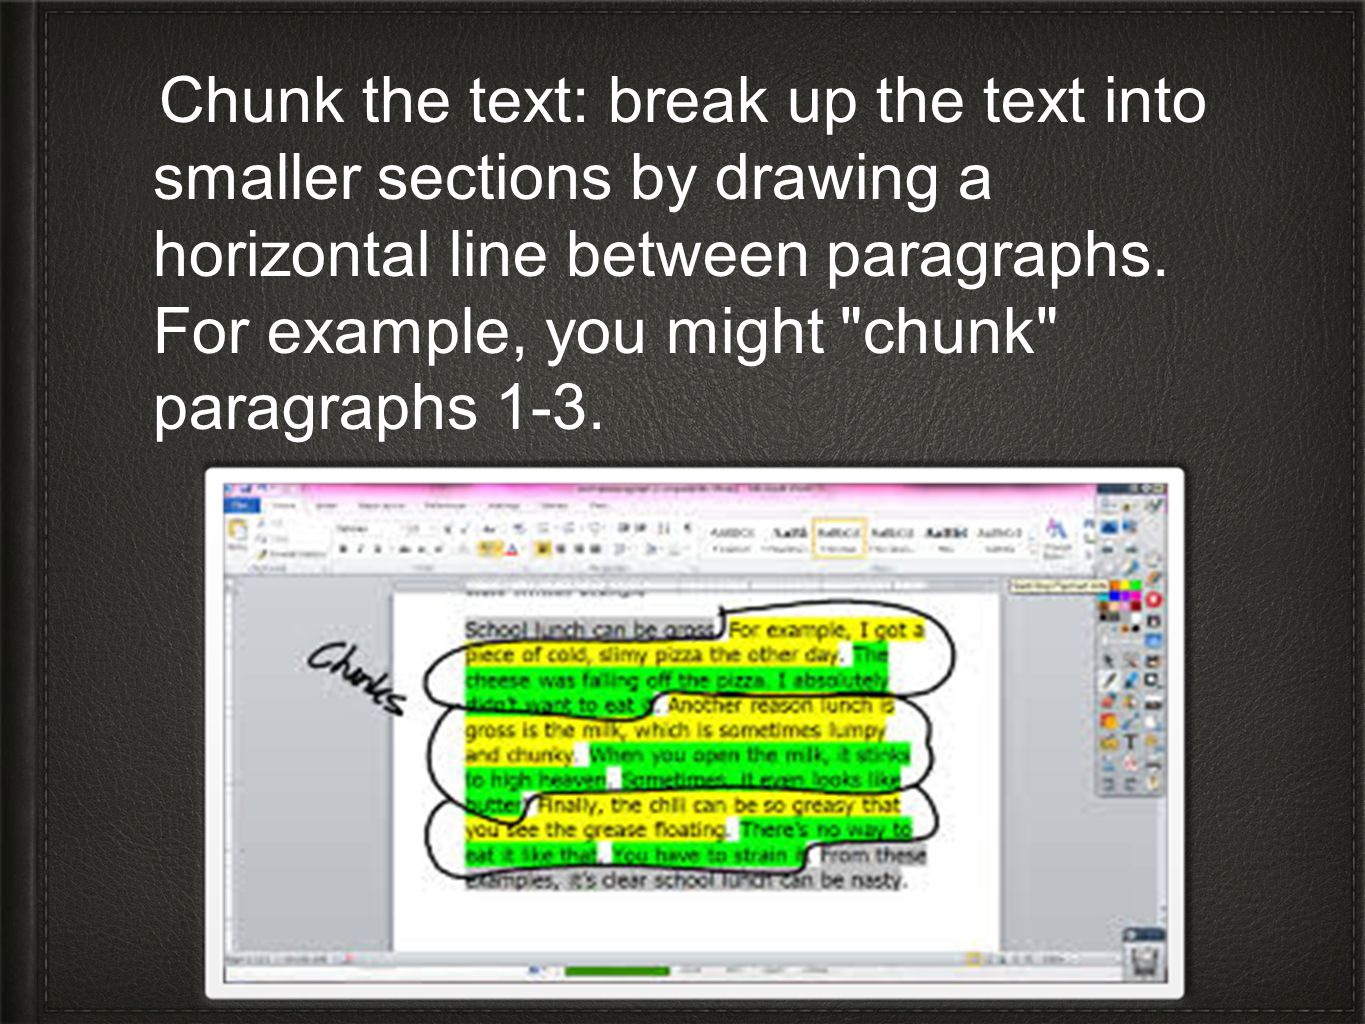 Chunk the text: break up the text into smaller sections by drawing a horizontal line between paragraphs.